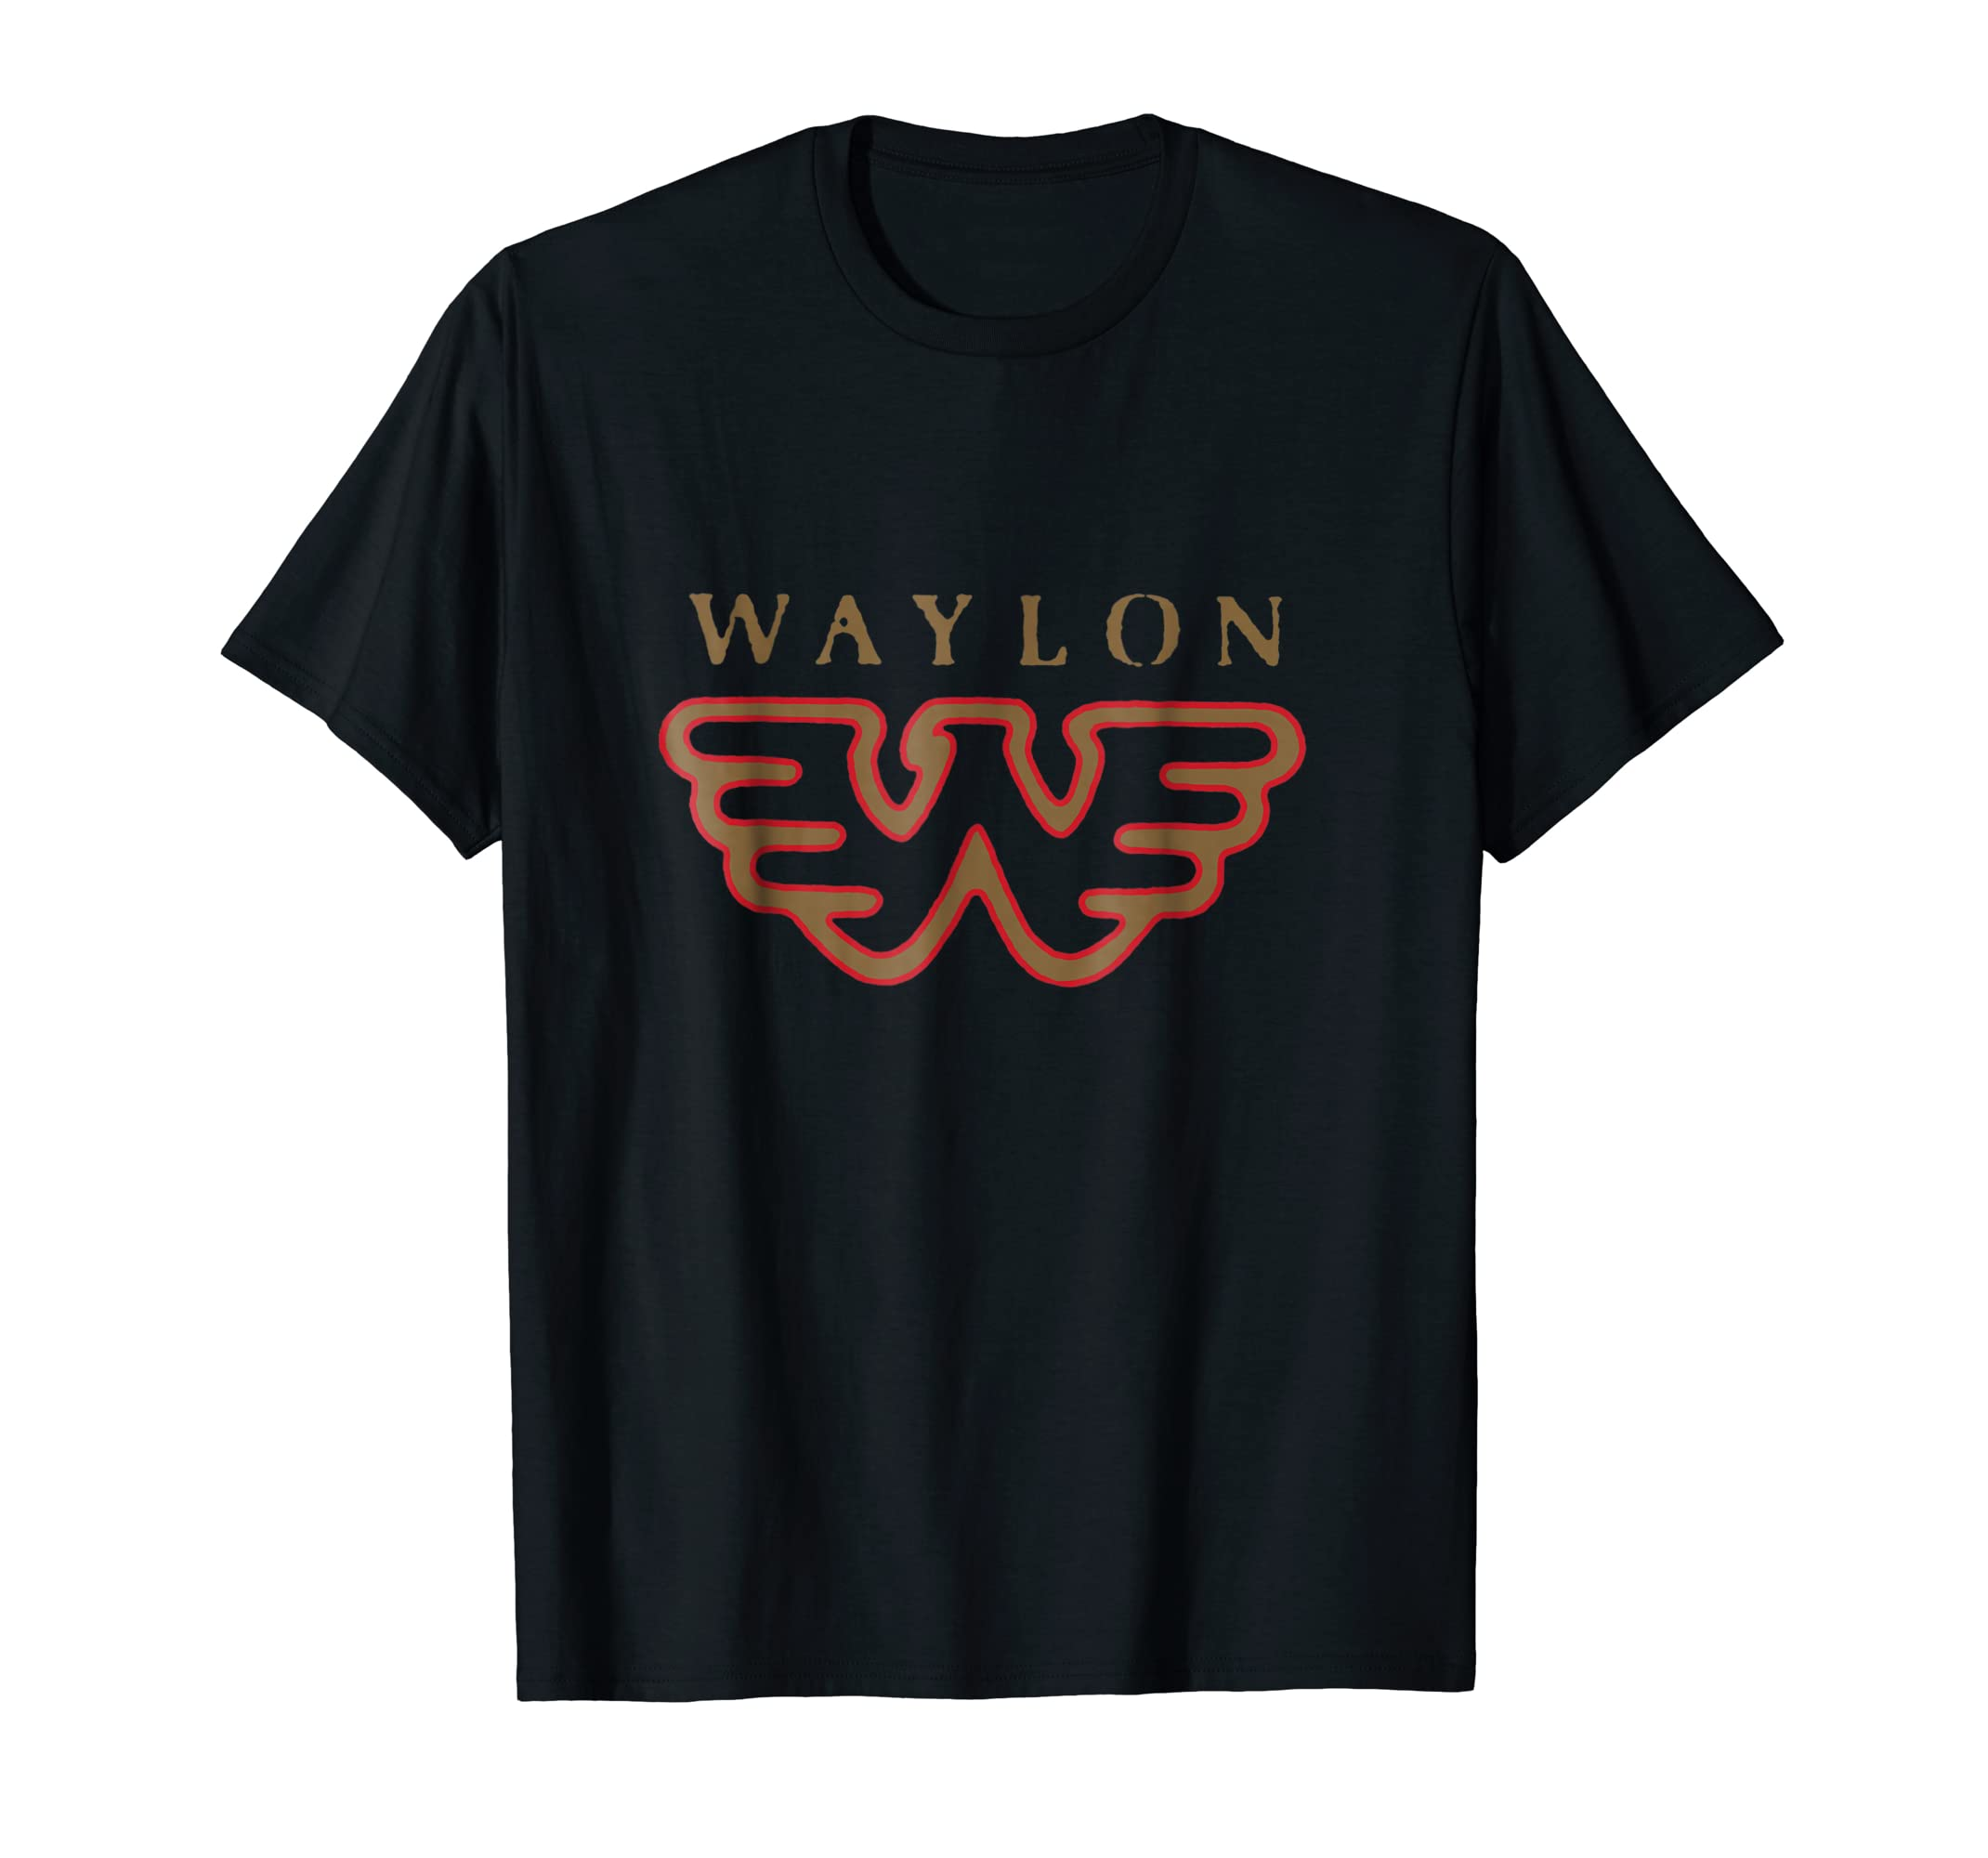 b6335d98 Amazon.com: Waylon Jennings Flying W Logo Shirt - Official Merch: Clothing